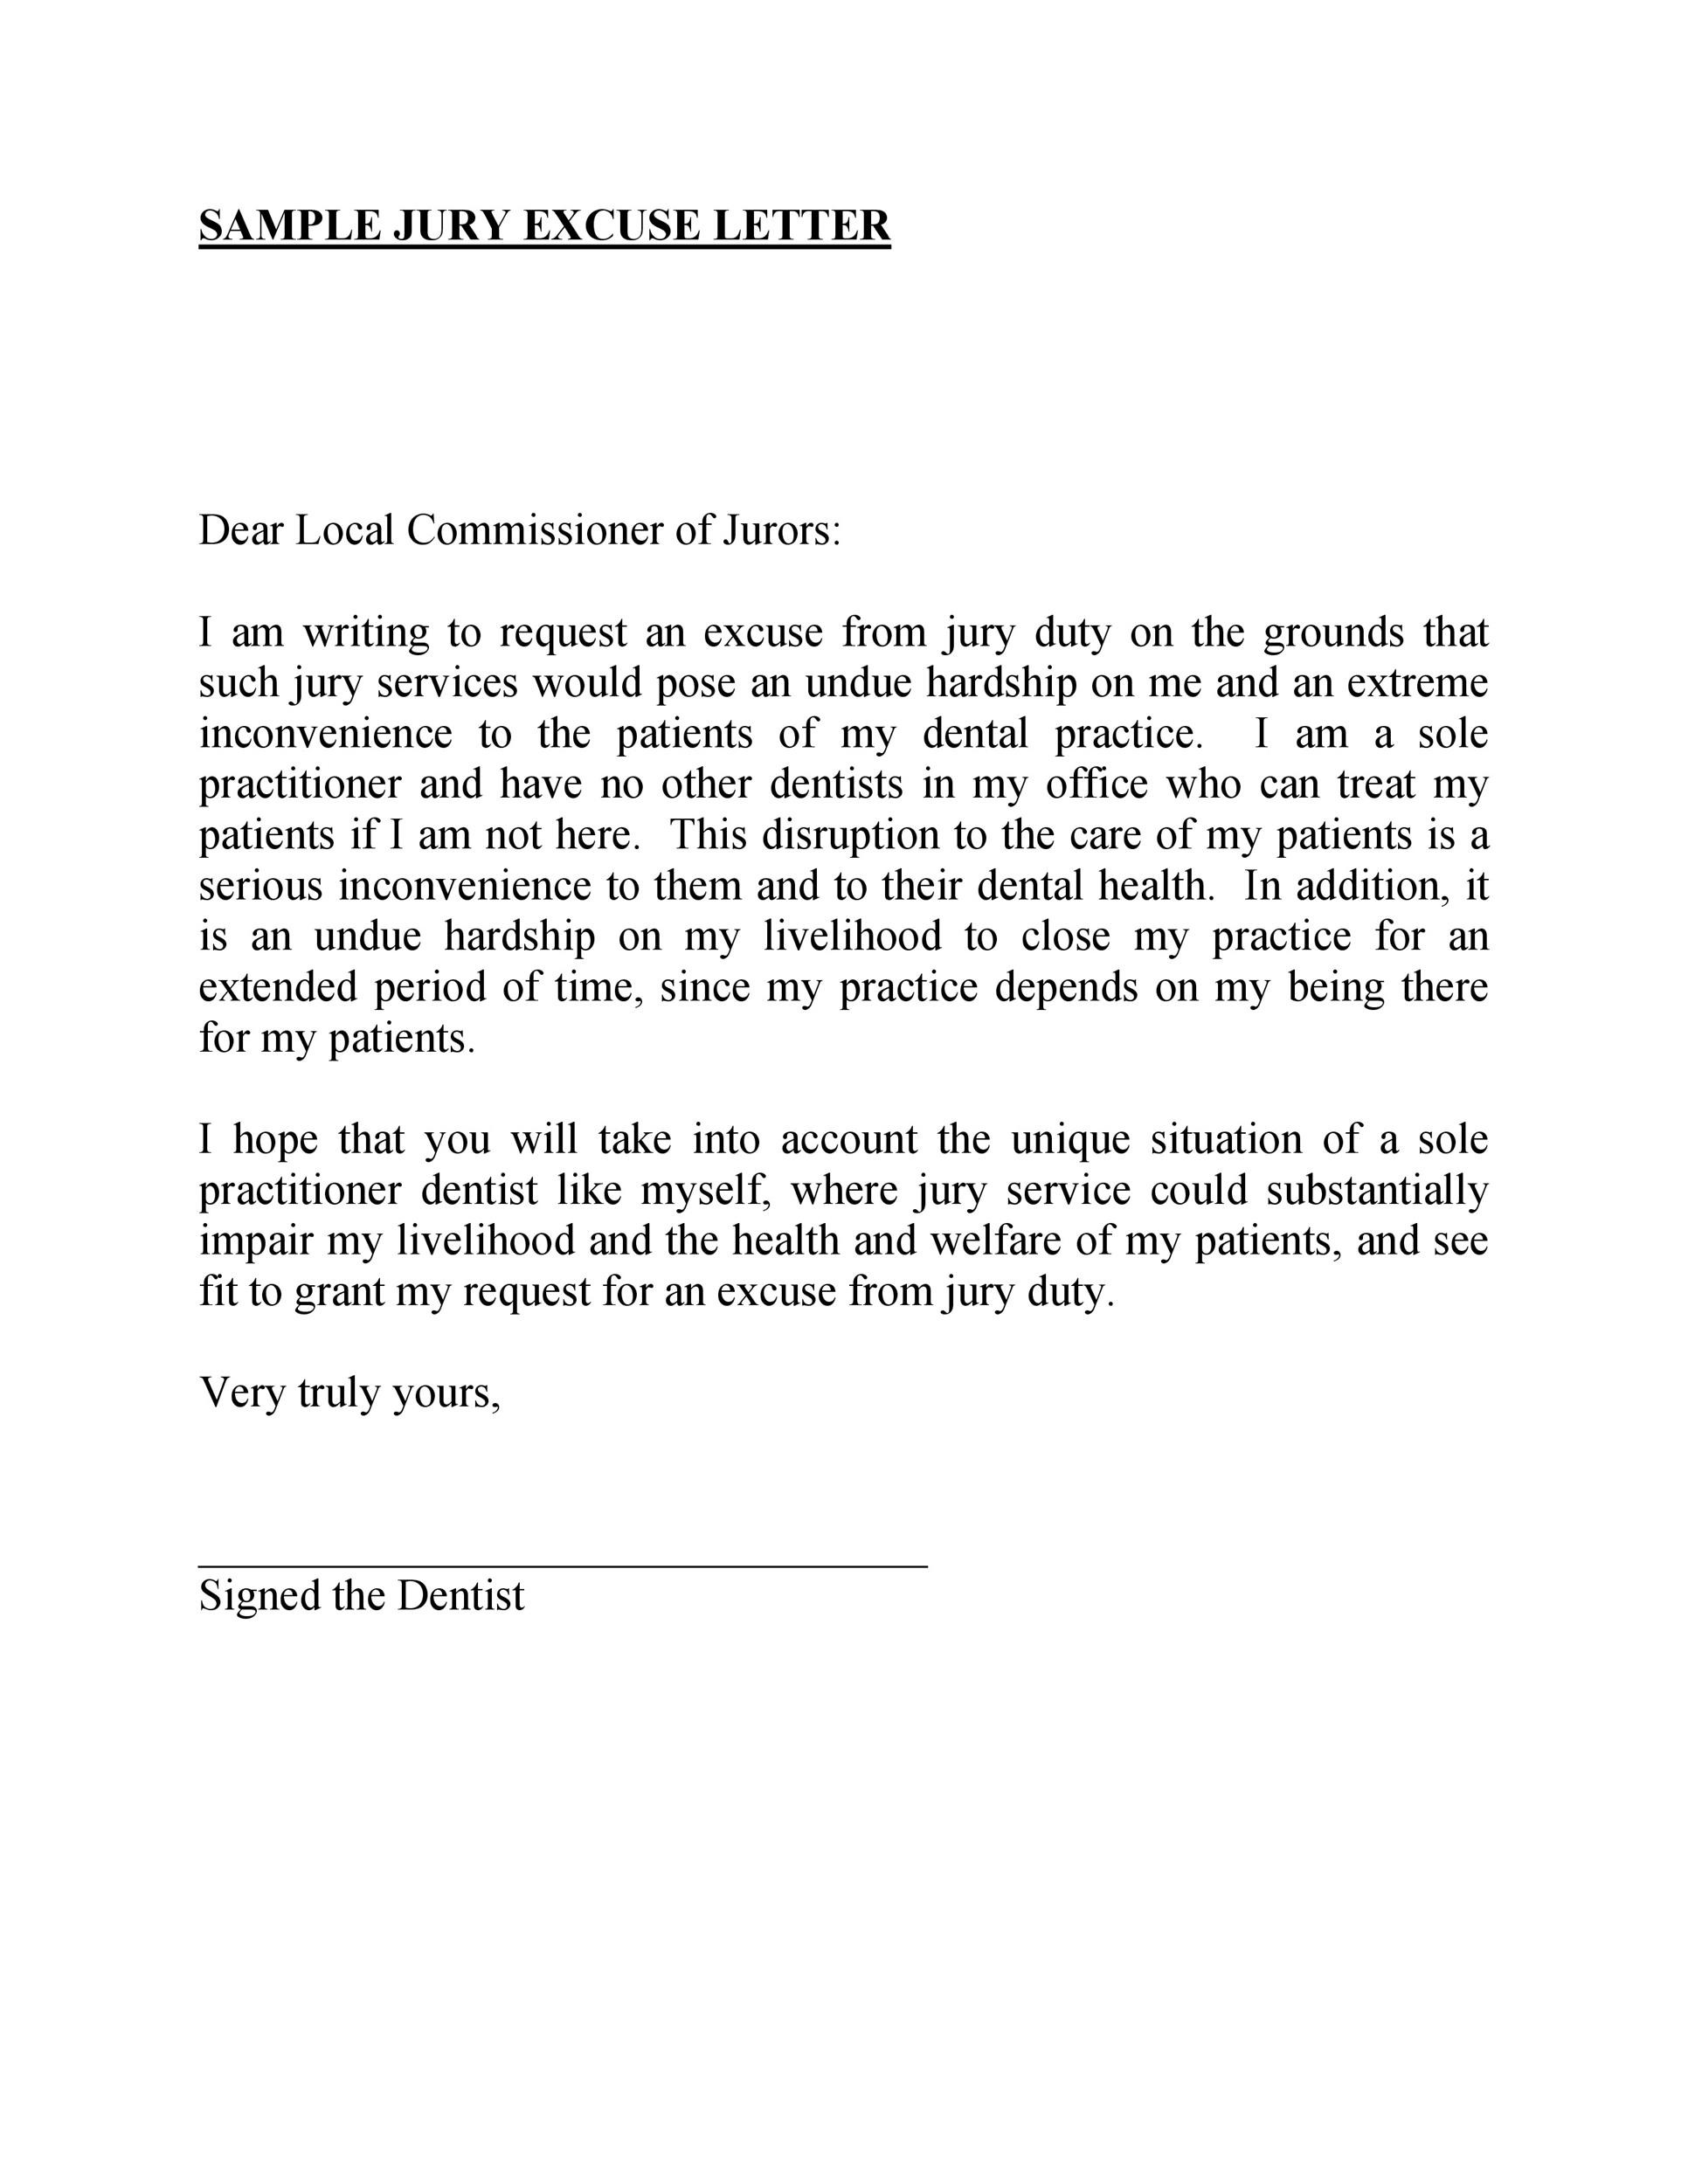 Free jury duty excuse letter template 09